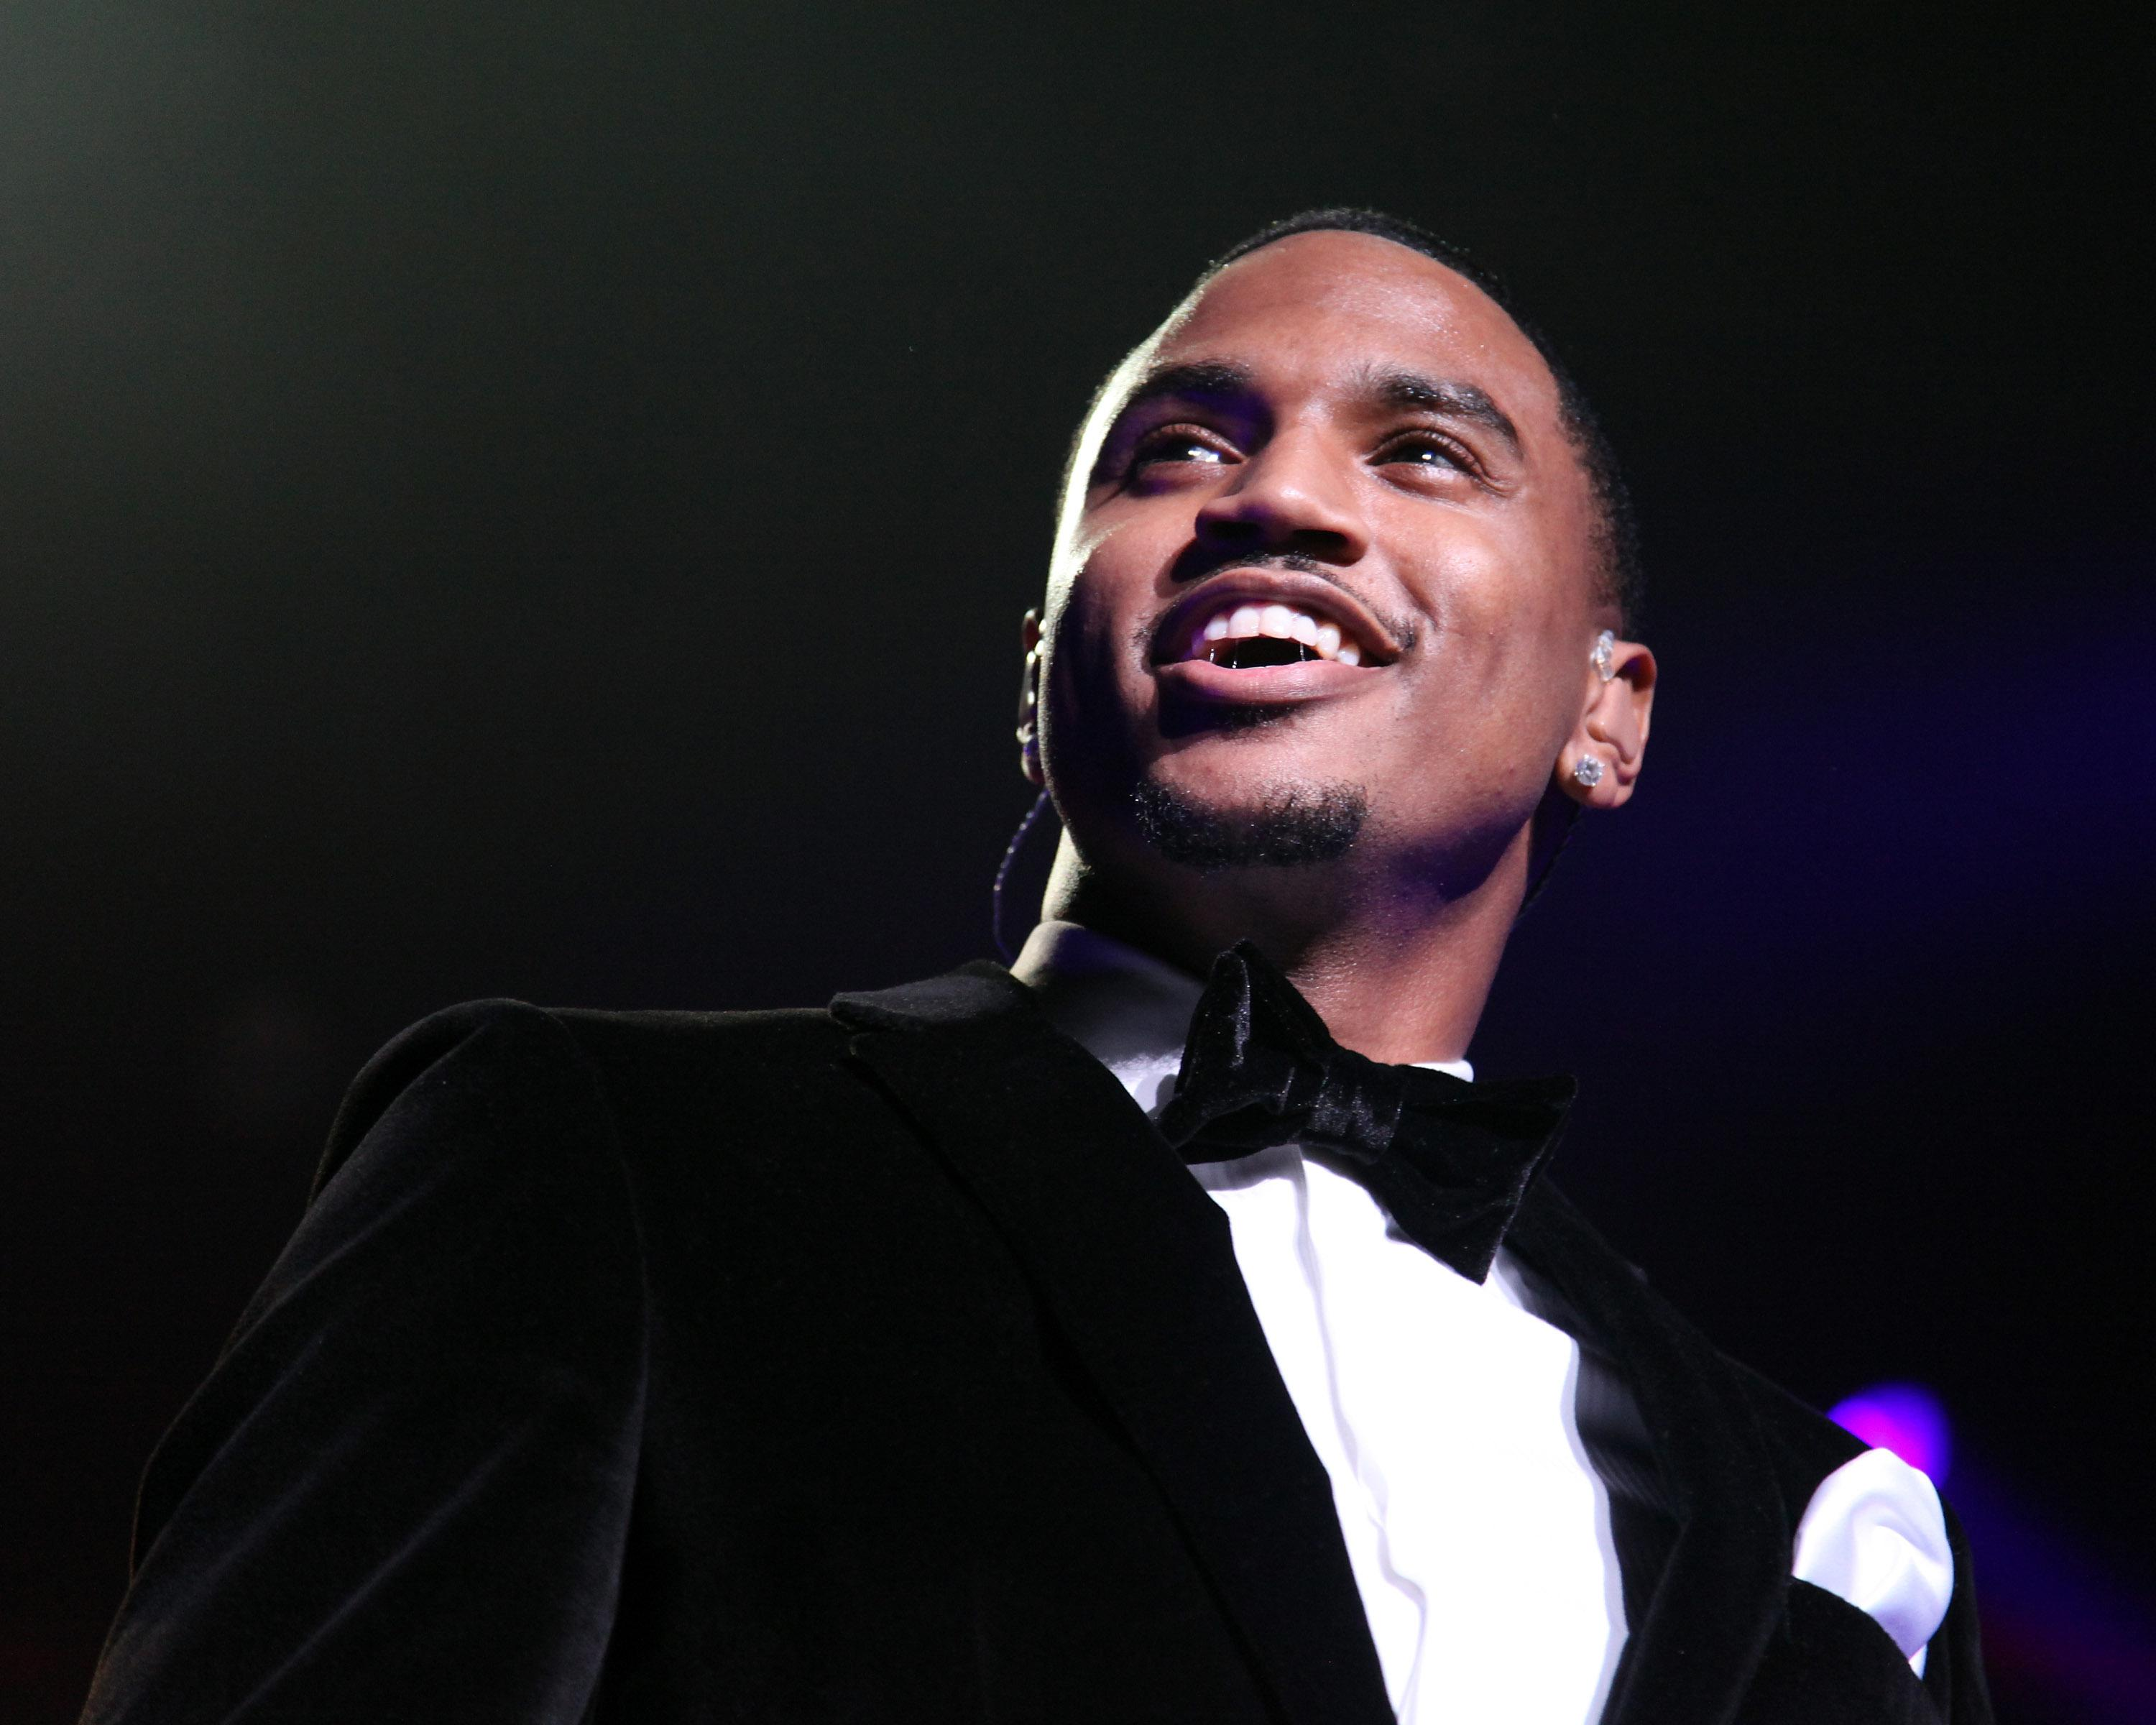 Trey Songz With Big Sean In Concert